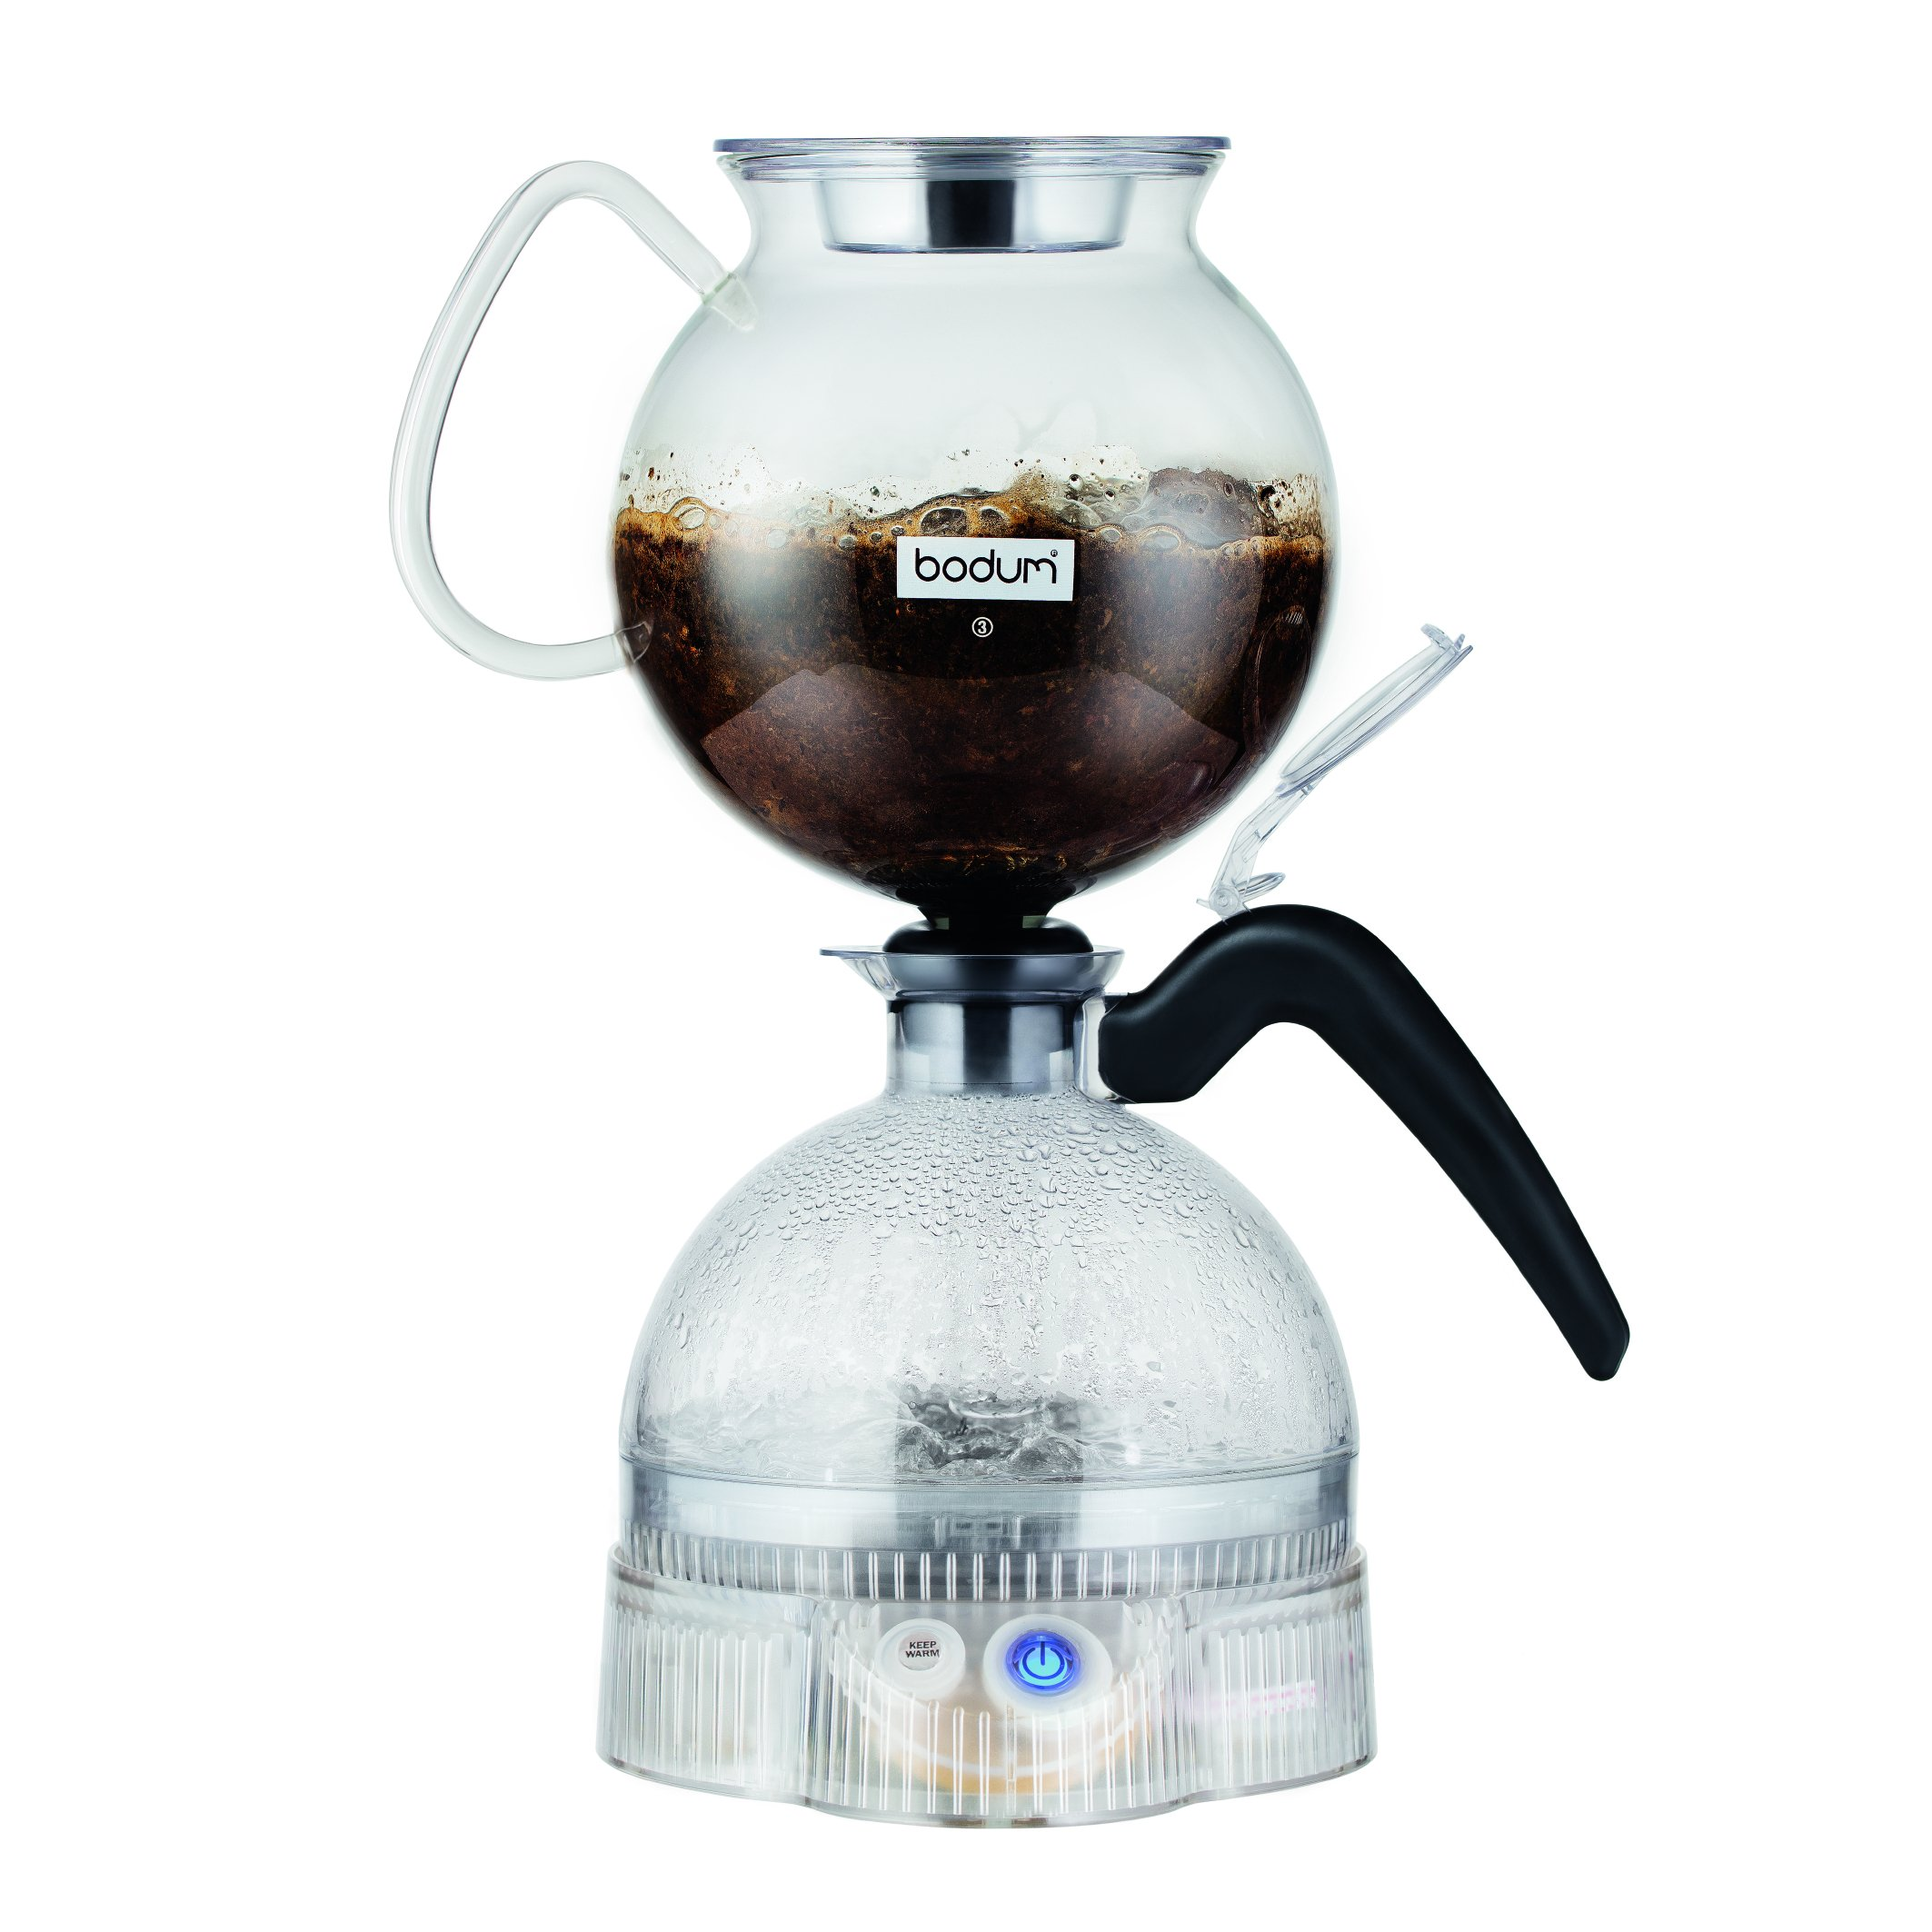 Bodum ePEBO Coffee Maker, Electric Vacuum Coffee Maker, Siphon Coffee Brewer , Black, 34 Ounces.